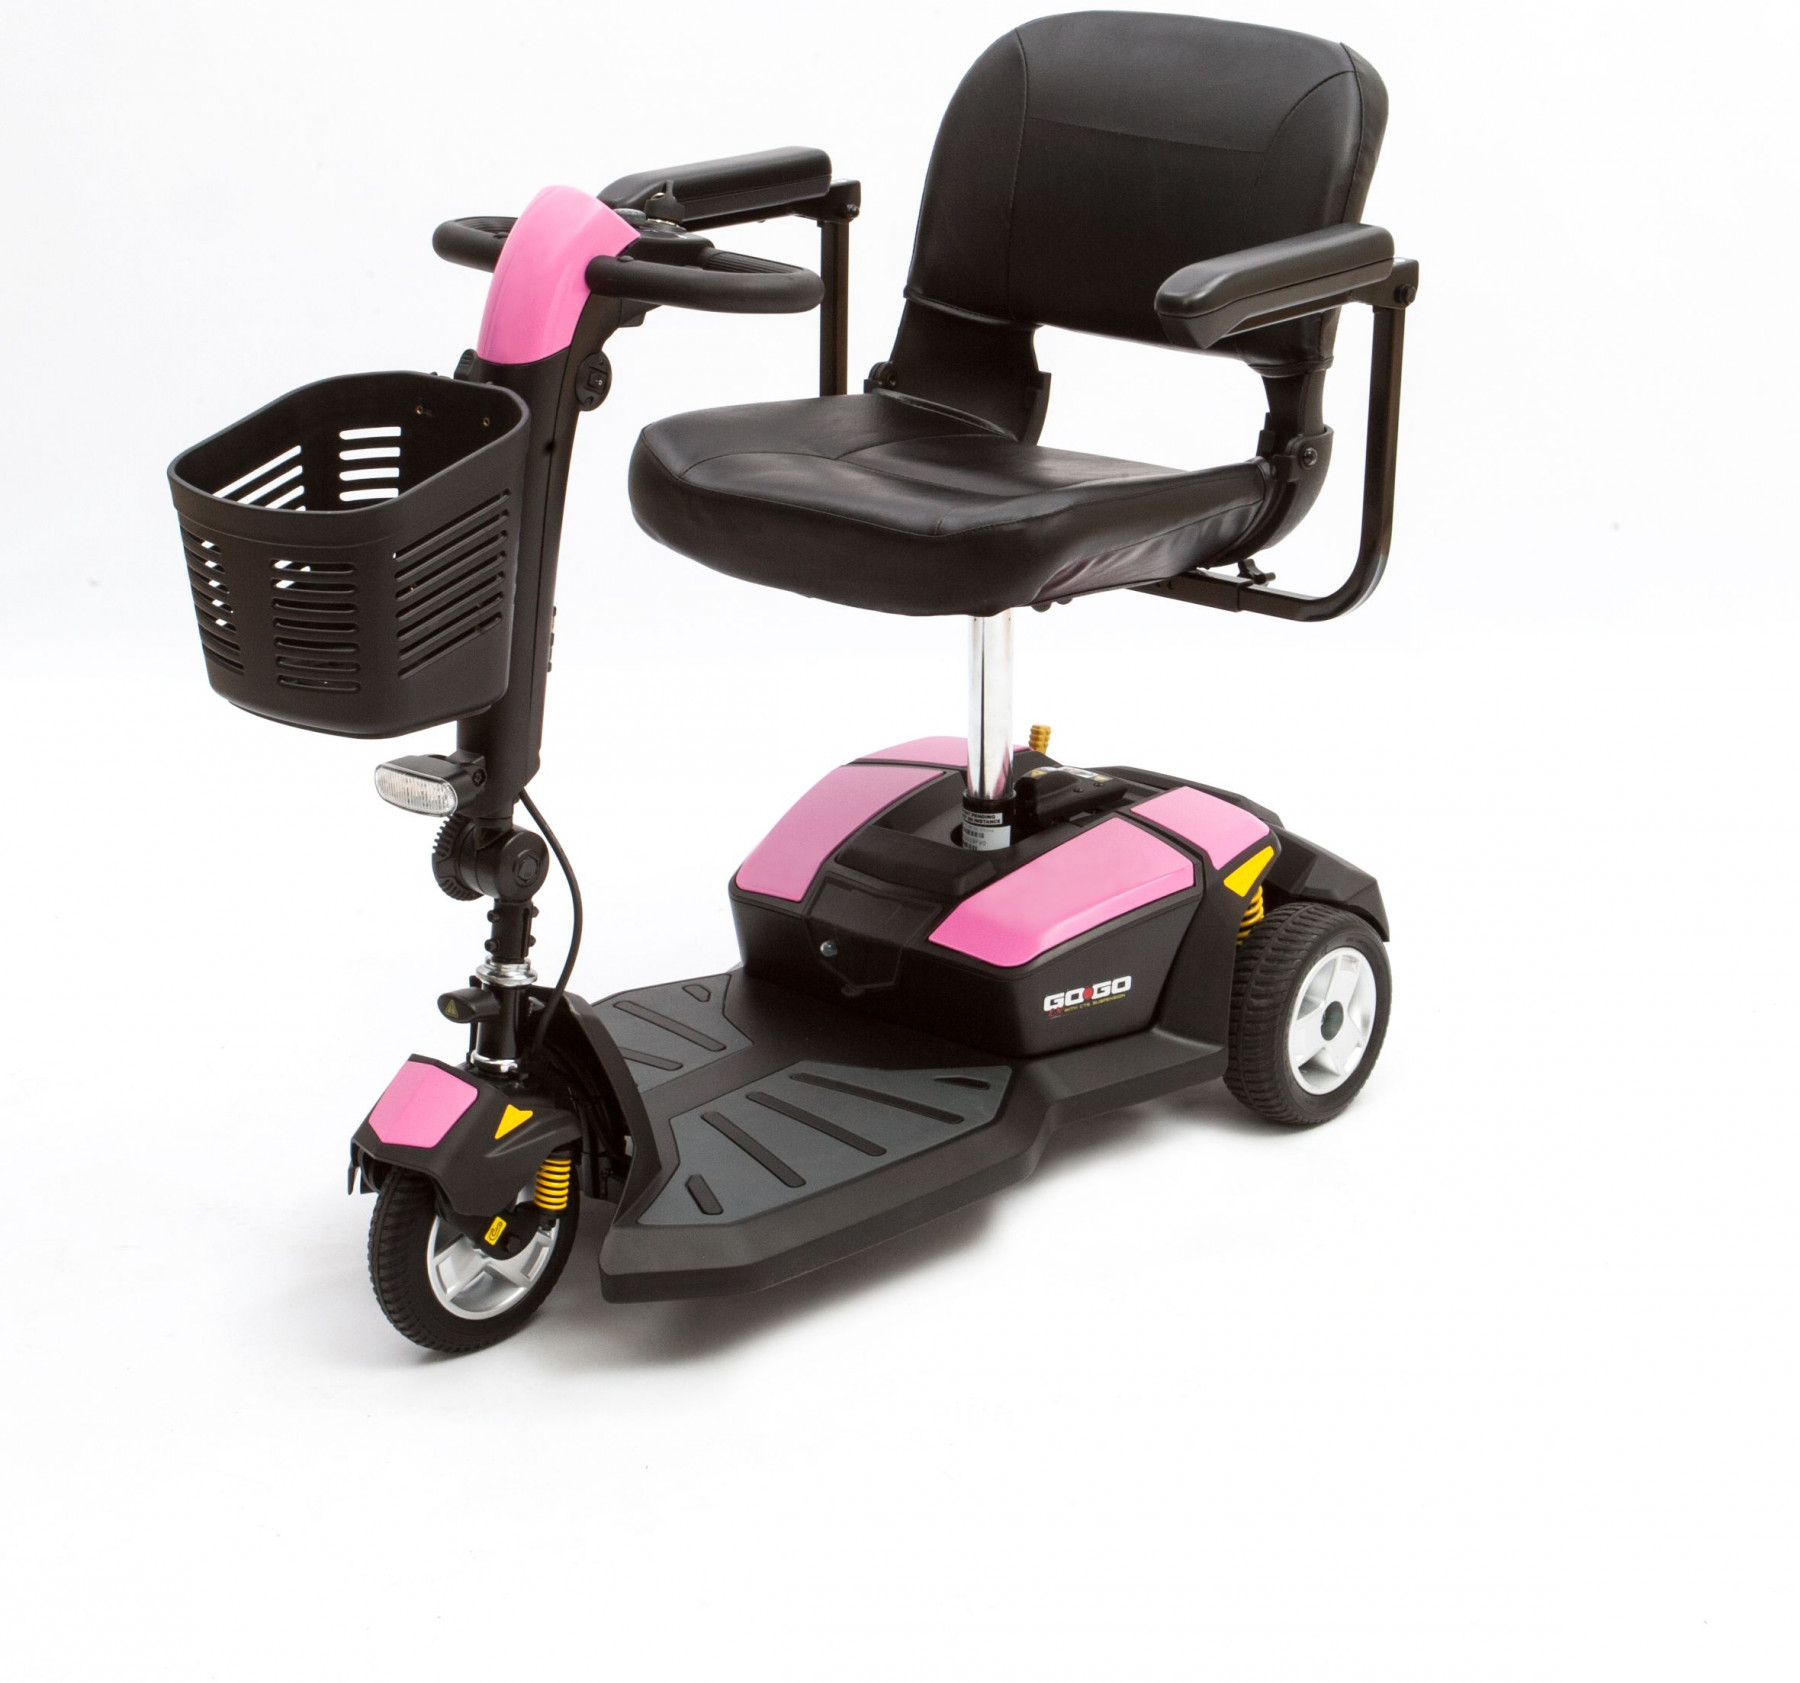 Pink mobility scooter pride go go lx 3 wheel tax free for Go go motorized scooter